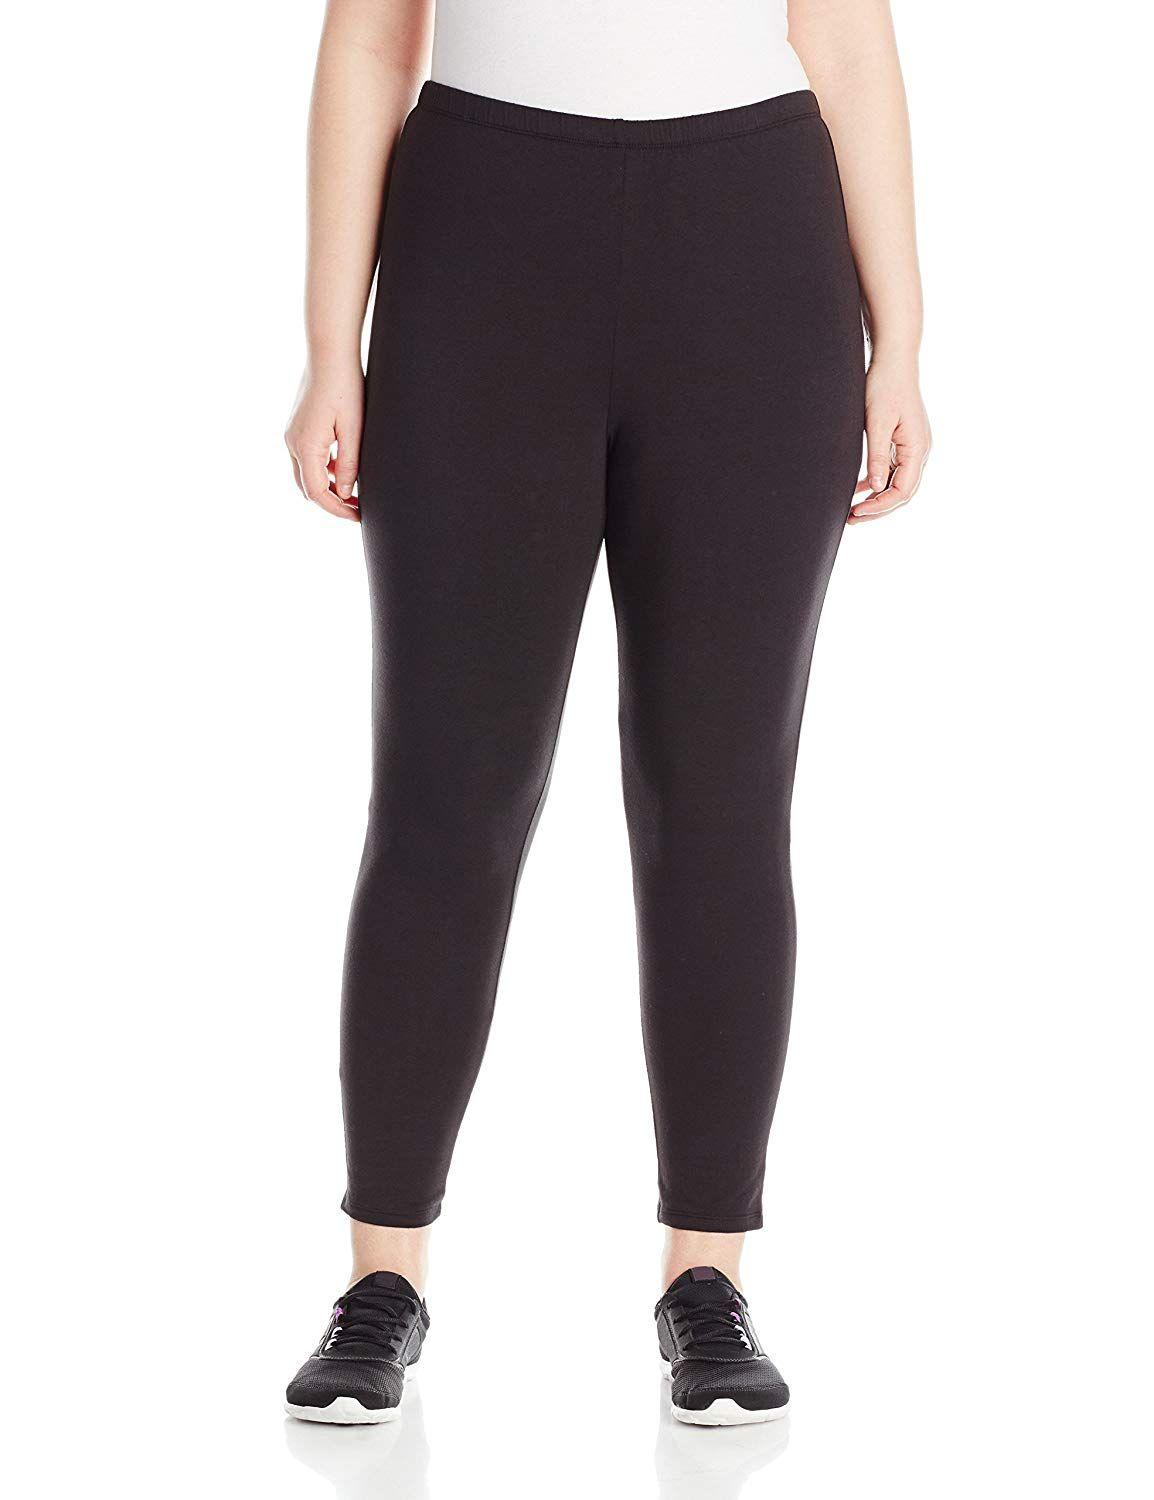 """<h3><a href=""""https://www.amazon.com/Just-My-Size-Plus-Size-Stretch/dp/B01B3IT512/"""" rel=""""nofollow noopener"""" target=""""_blank"""" data-ylk=""""slk:Just My Size Plus-Size Jersey Legging"""" class=""""link rapid-noclick-resp"""">Just My Size Plus-Size Jersey Legging</a> </h3> <p>3.9 out of 5 stars and 481 reviews</p> <p><strong>Promising Review:</strong> Consider this pair your new go-to for casual wear. <a href=""""https://www.amazon.com/gp/customer-reviews/R10VNC1MXTDNDC/"""" rel=""""nofollow noopener"""" target=""""_blank"""" data-ylk=""""slk:One reviewer says"""" class=""""link rapid-noclick-resp"""">One reviewer says </a> she lives in them because they don't fade with each wash. She also suggests this pair for shorter women: """"They are not paper thin like a lot of leggings. They have a little body to them, don't show every little 'bump' and are the perfect length for a short person. I like ankle length and that's where they come on me. I hope this style stays on Amazon so I can find them when I need them again.""""</p> <br> <br> <strong>Just My Size</strong> Plus-Size Stretch Jersey Legging, $11.07, available at <a href=""""https://www.amazon.com/Just-My-Size-Plus-Size-Stretch/dp/B01B3IT512/"""" rel=""""nofollow noopener"""" target=""""_blank"""" data-ylk=""""slk:Amazon"""" class=""""link rapid-noclick-resp"""">Amazon</a>"""